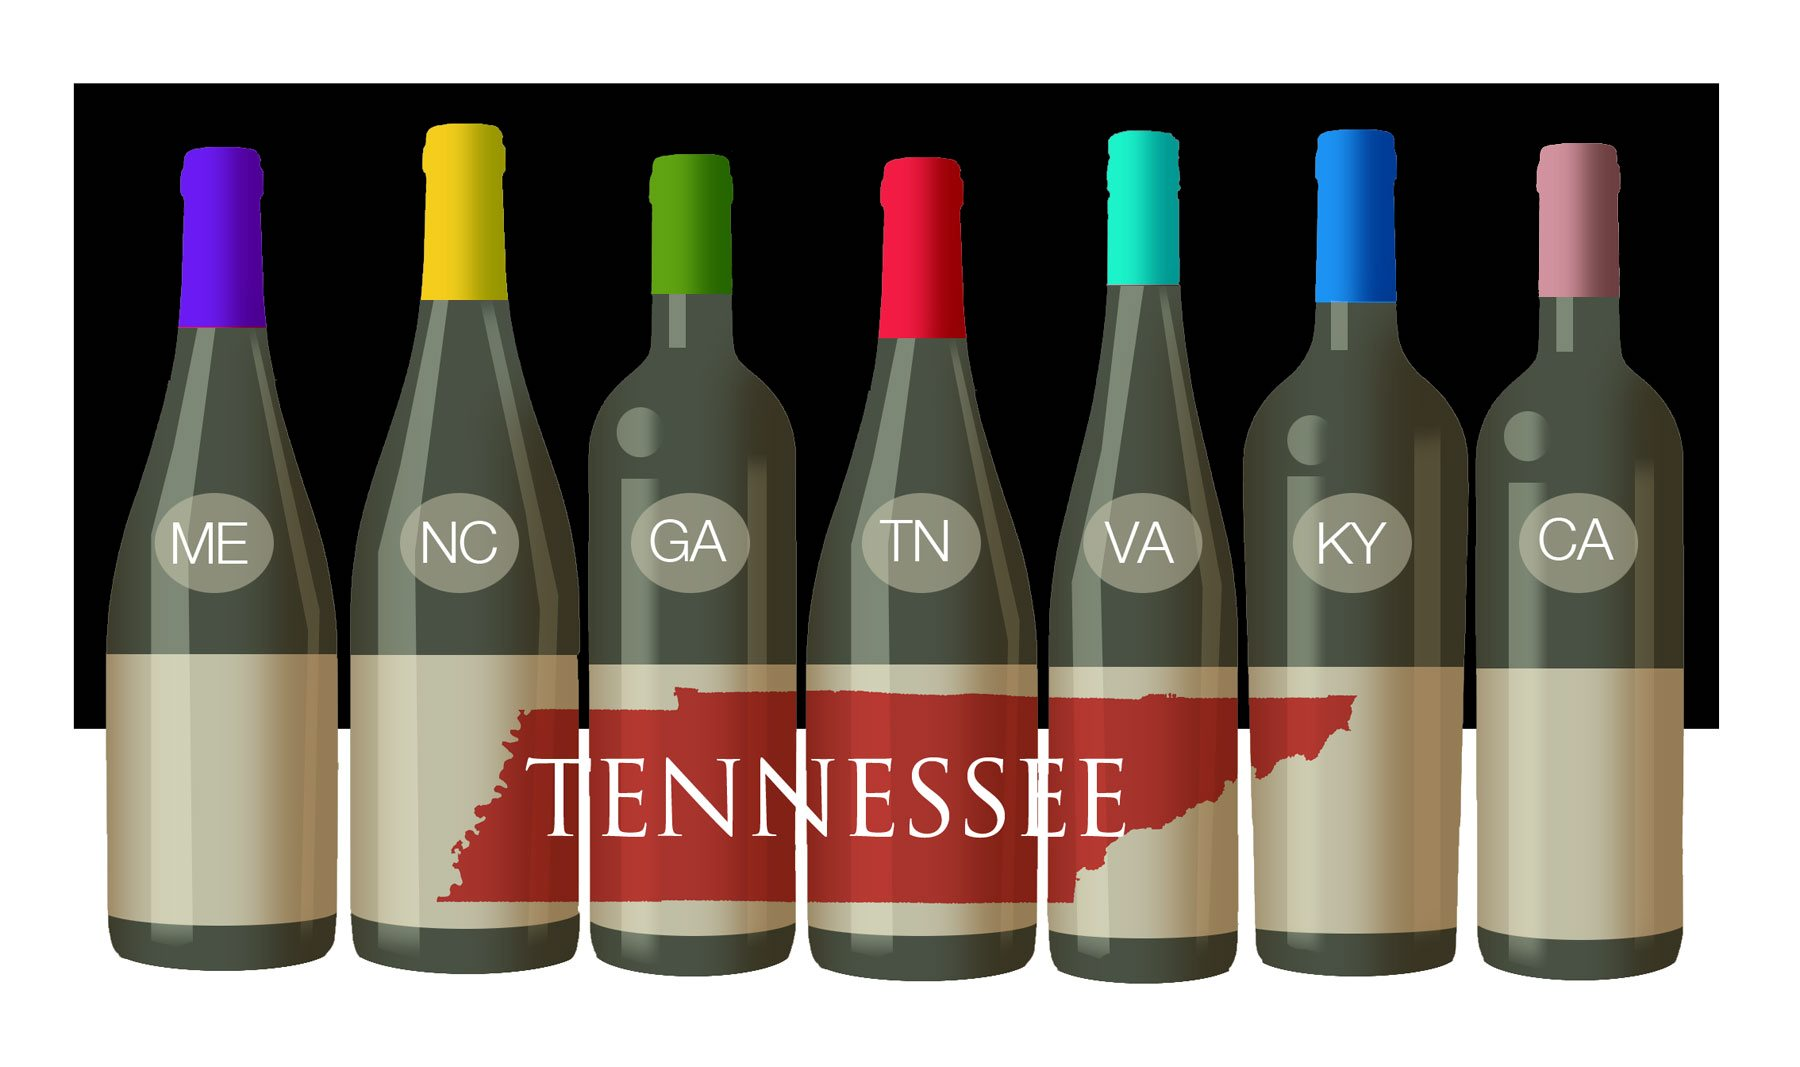 Enabling adults to buy out-of-state alcohol